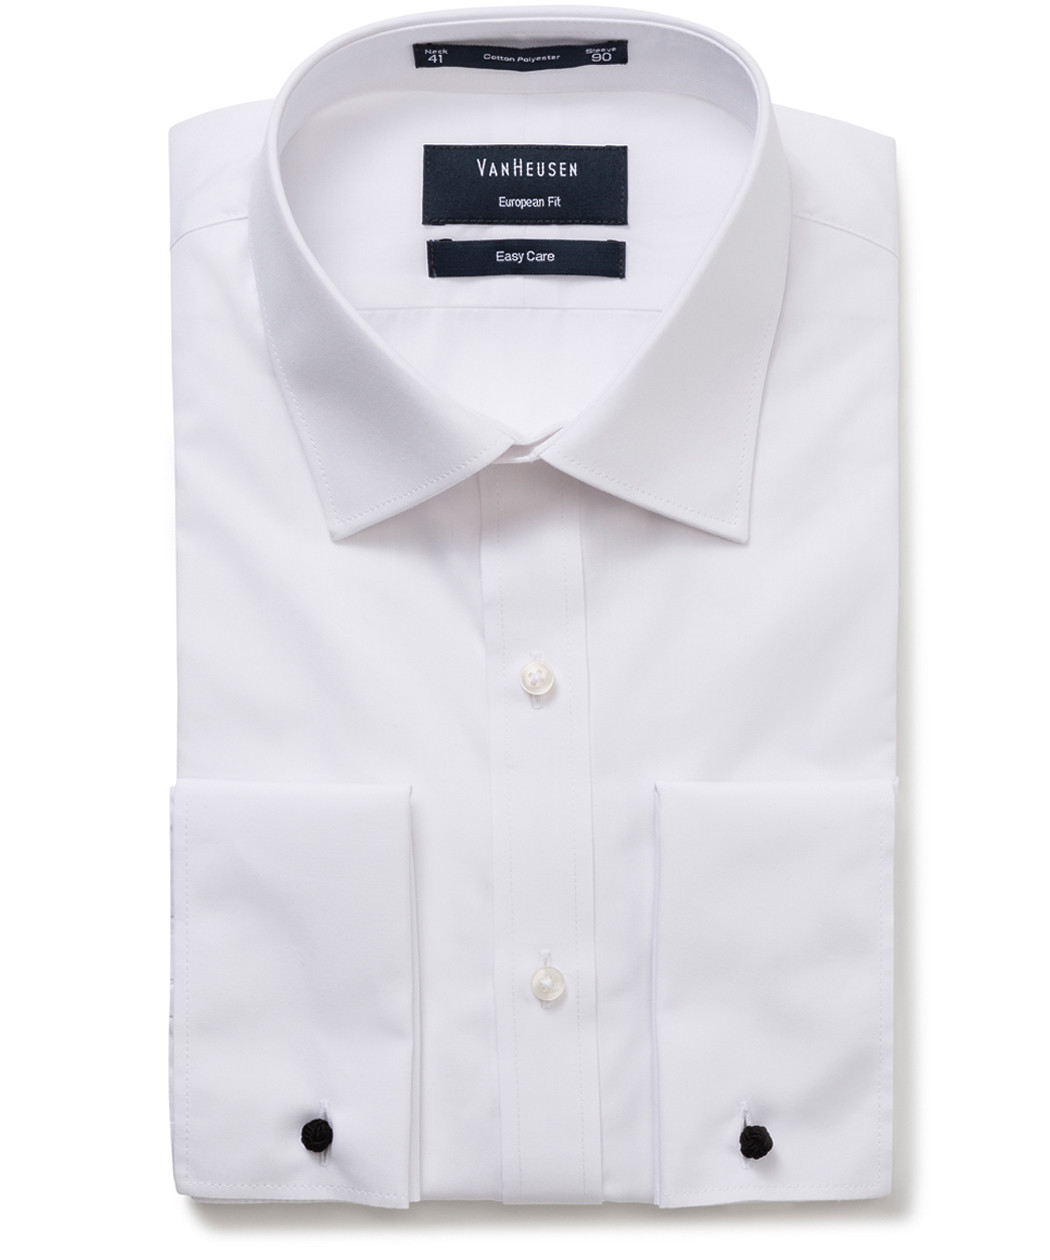 Van Heusen Mens Euro Tailored Fit Dinner Shirt Solid White French Cuff